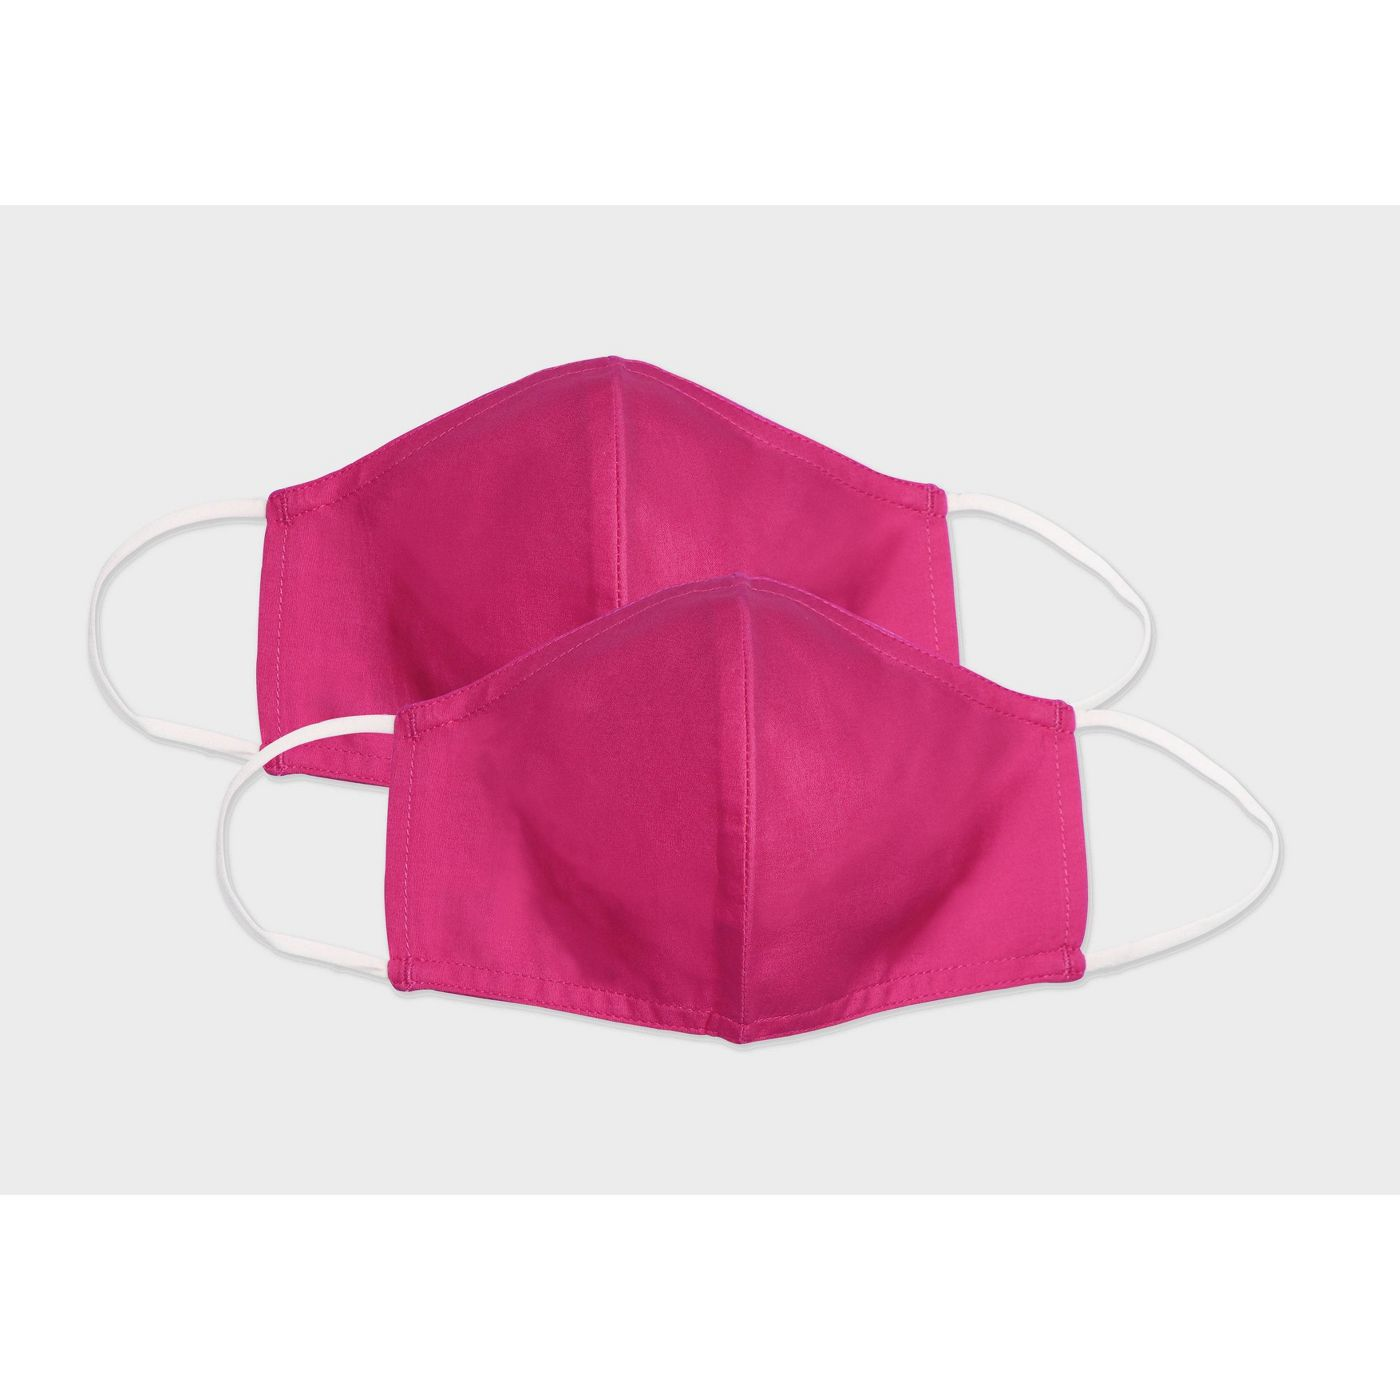 2pk Adult Fabric Face Mask - image 1 of 6